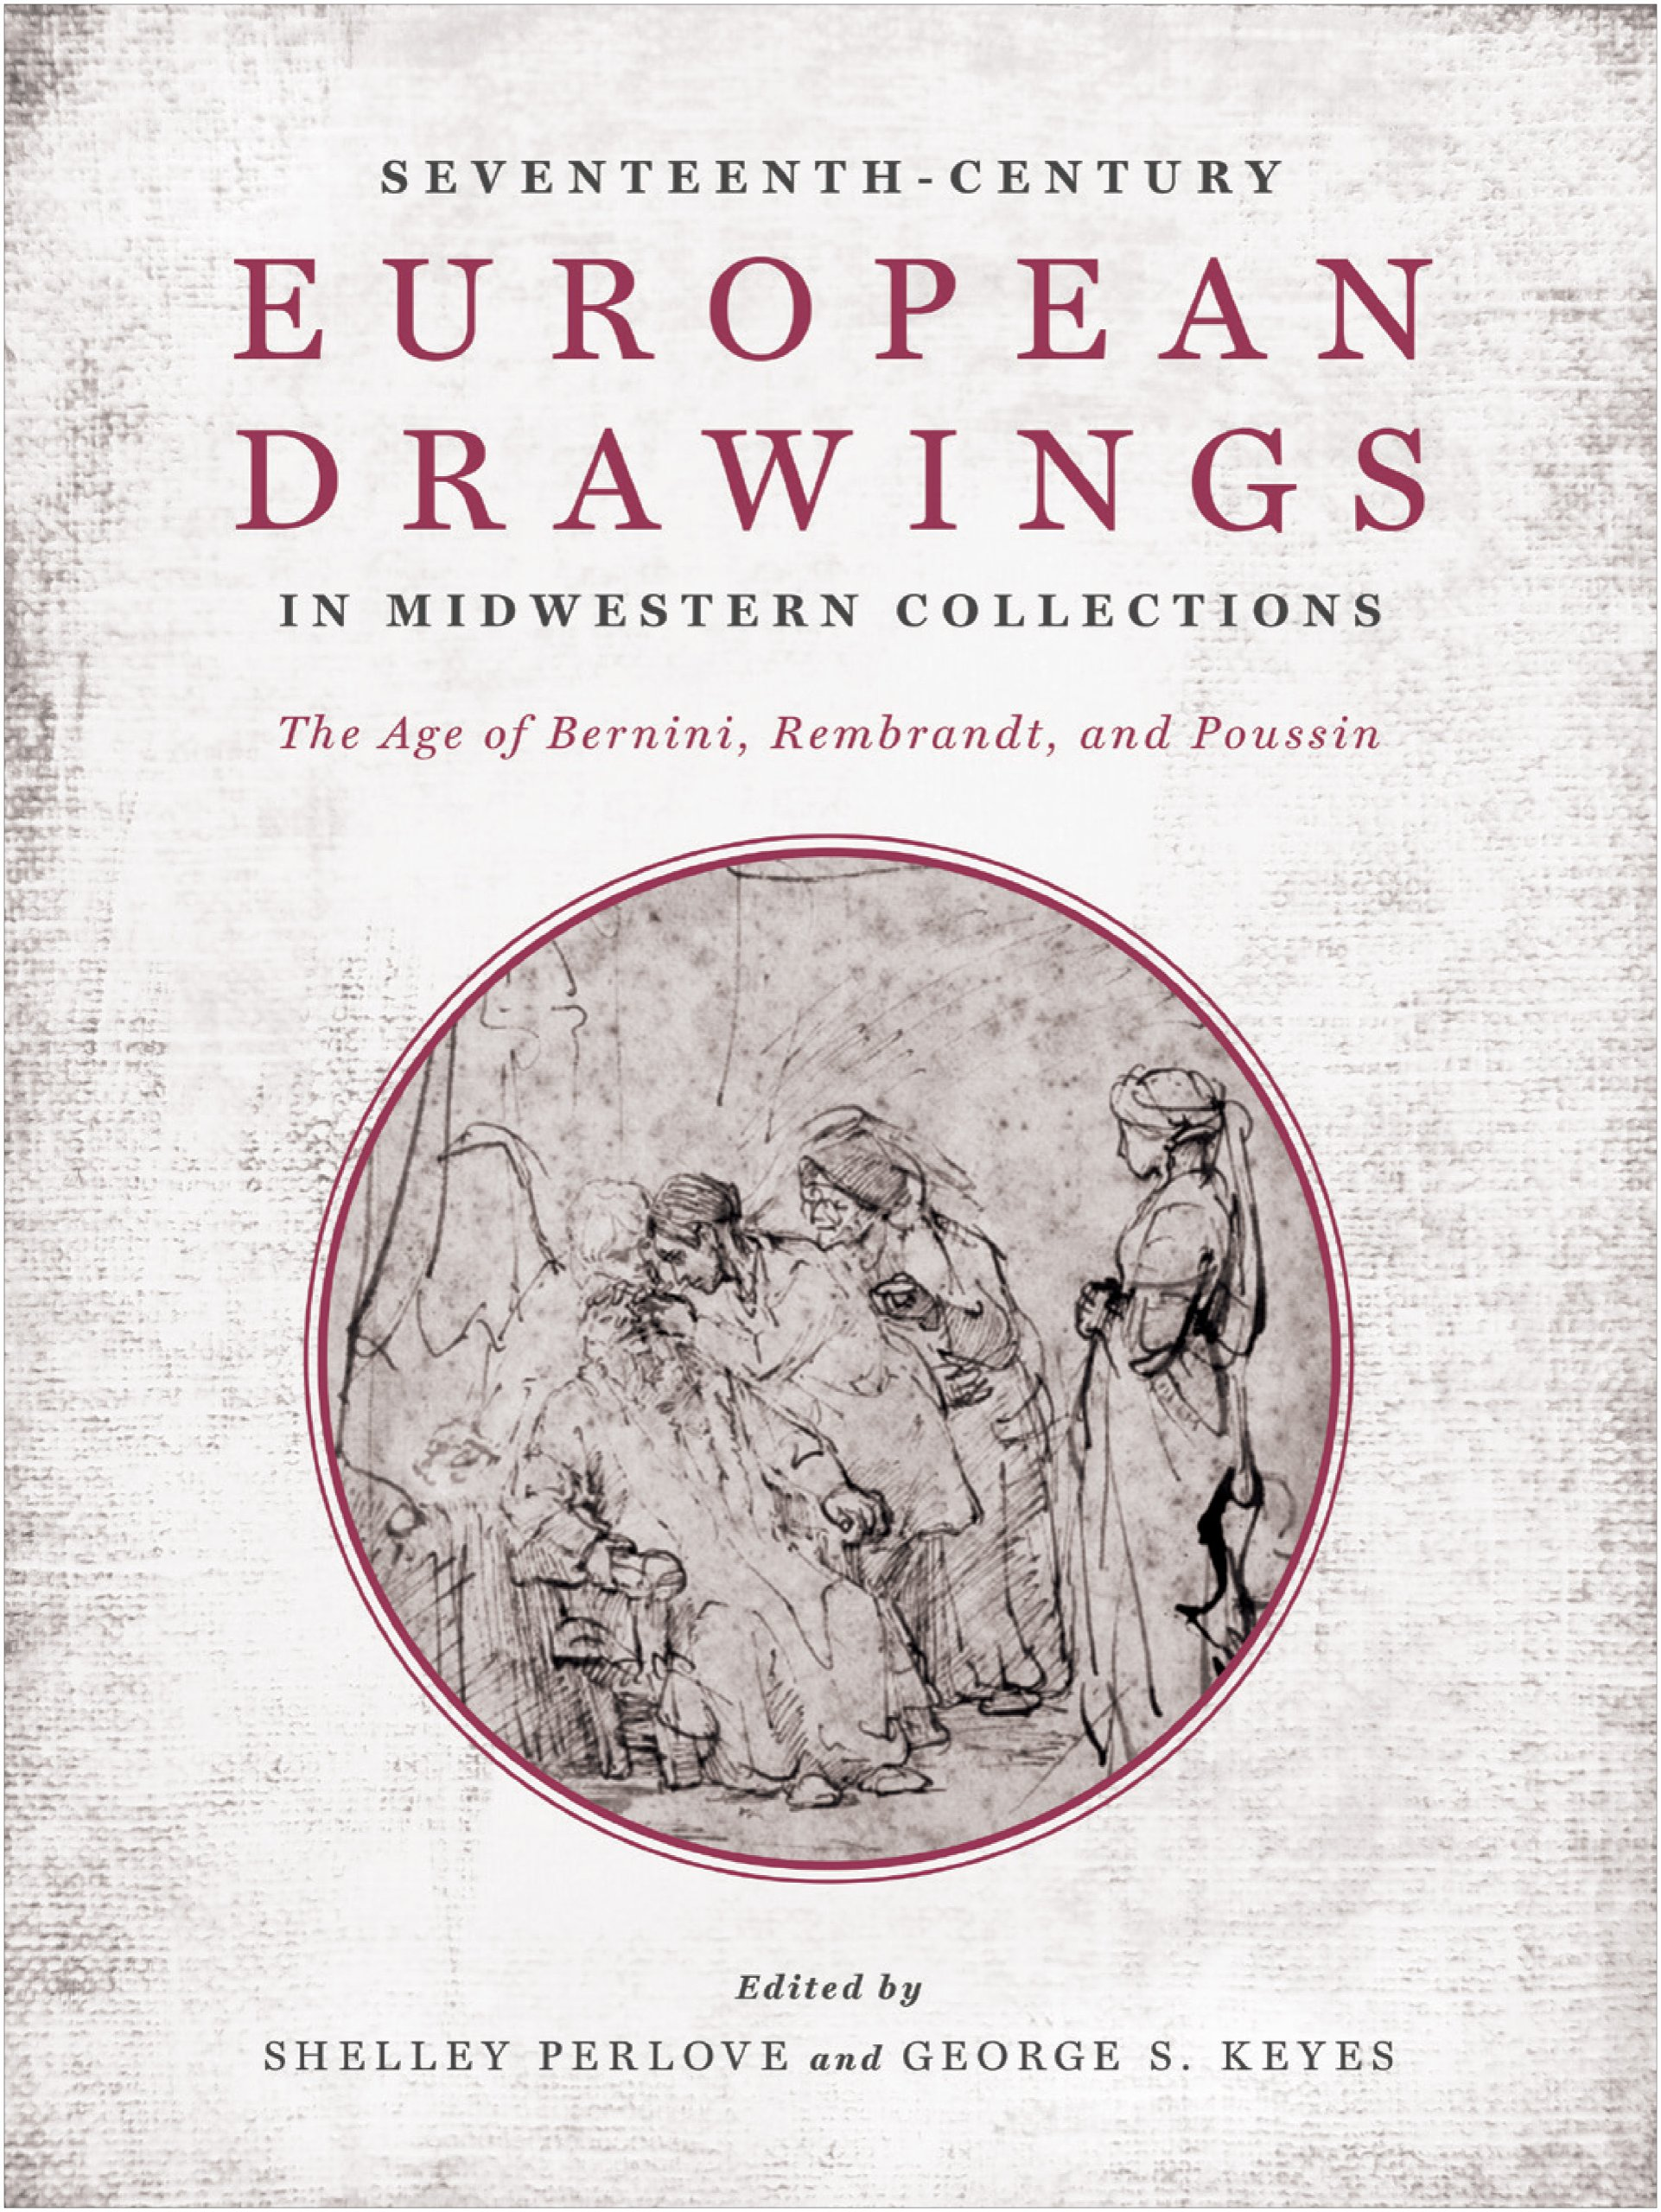 Seventeenth-Century European Drawings in Midwestern Collections: The Age of Bernini, Rembrandt, and Poussin ebook